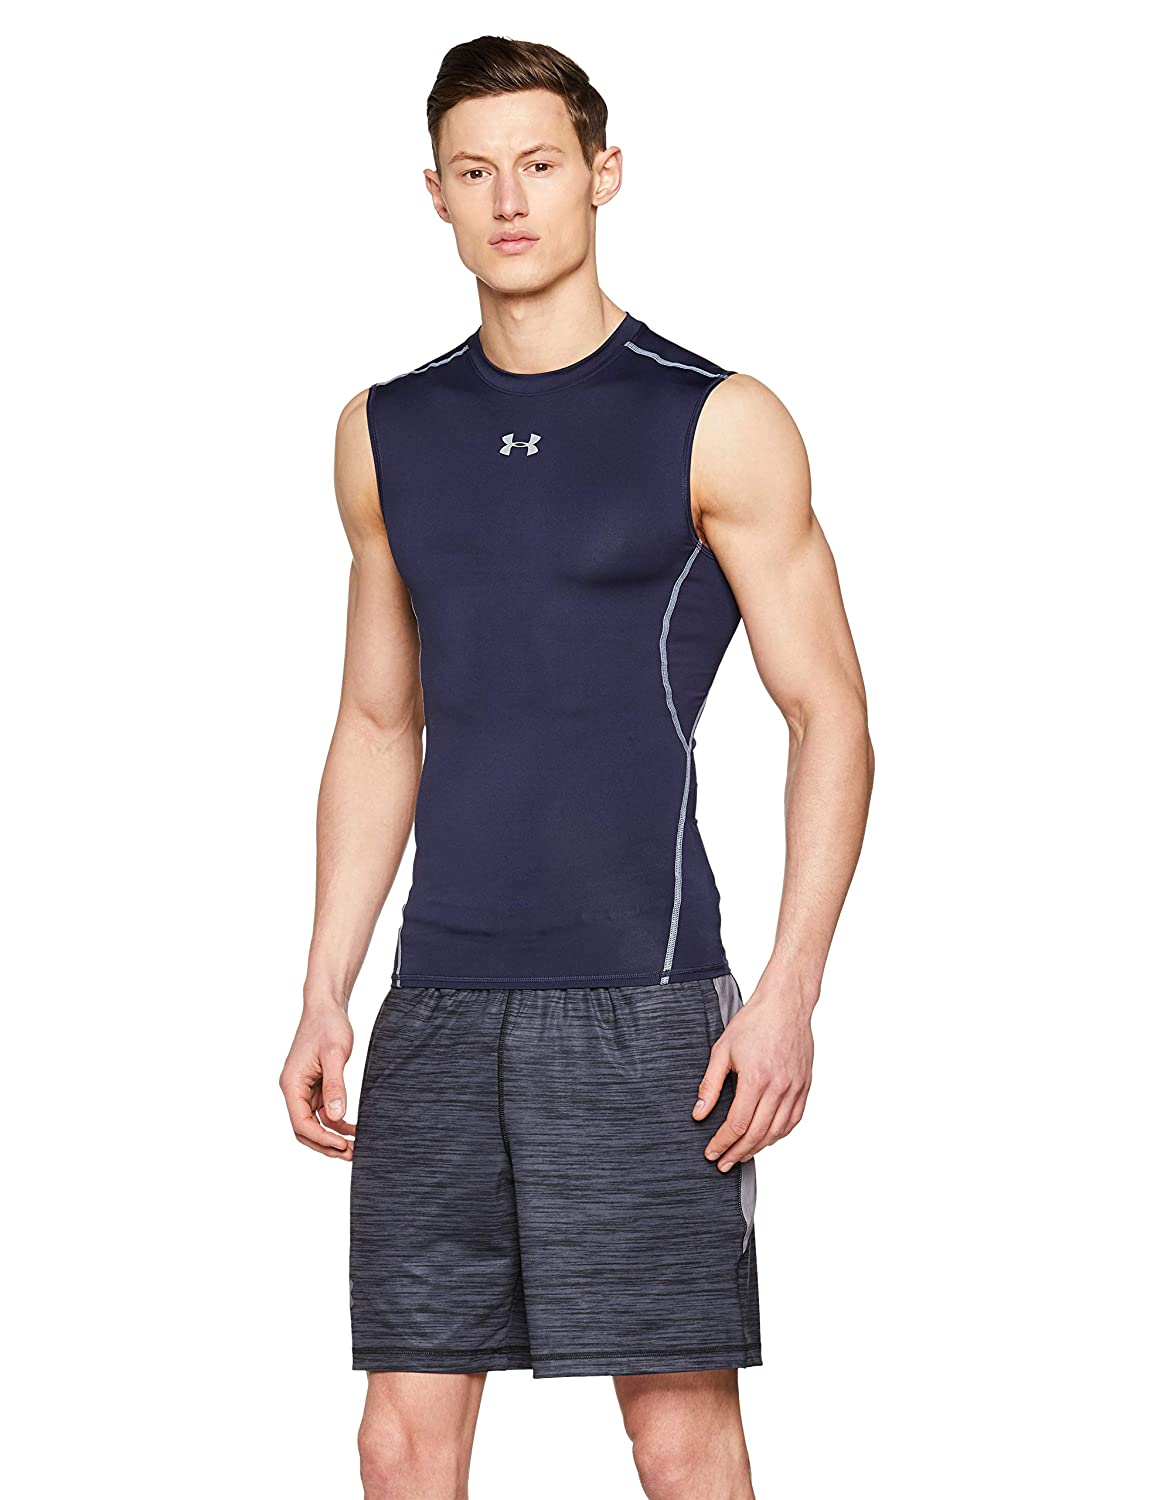 f107fc9ec Amazon.com: Under Armour Men's Heatgear Armour Sleeveless Compression  Shirt, Midnight Navy /Steel, XXXX-Large: Sports & Outdoors